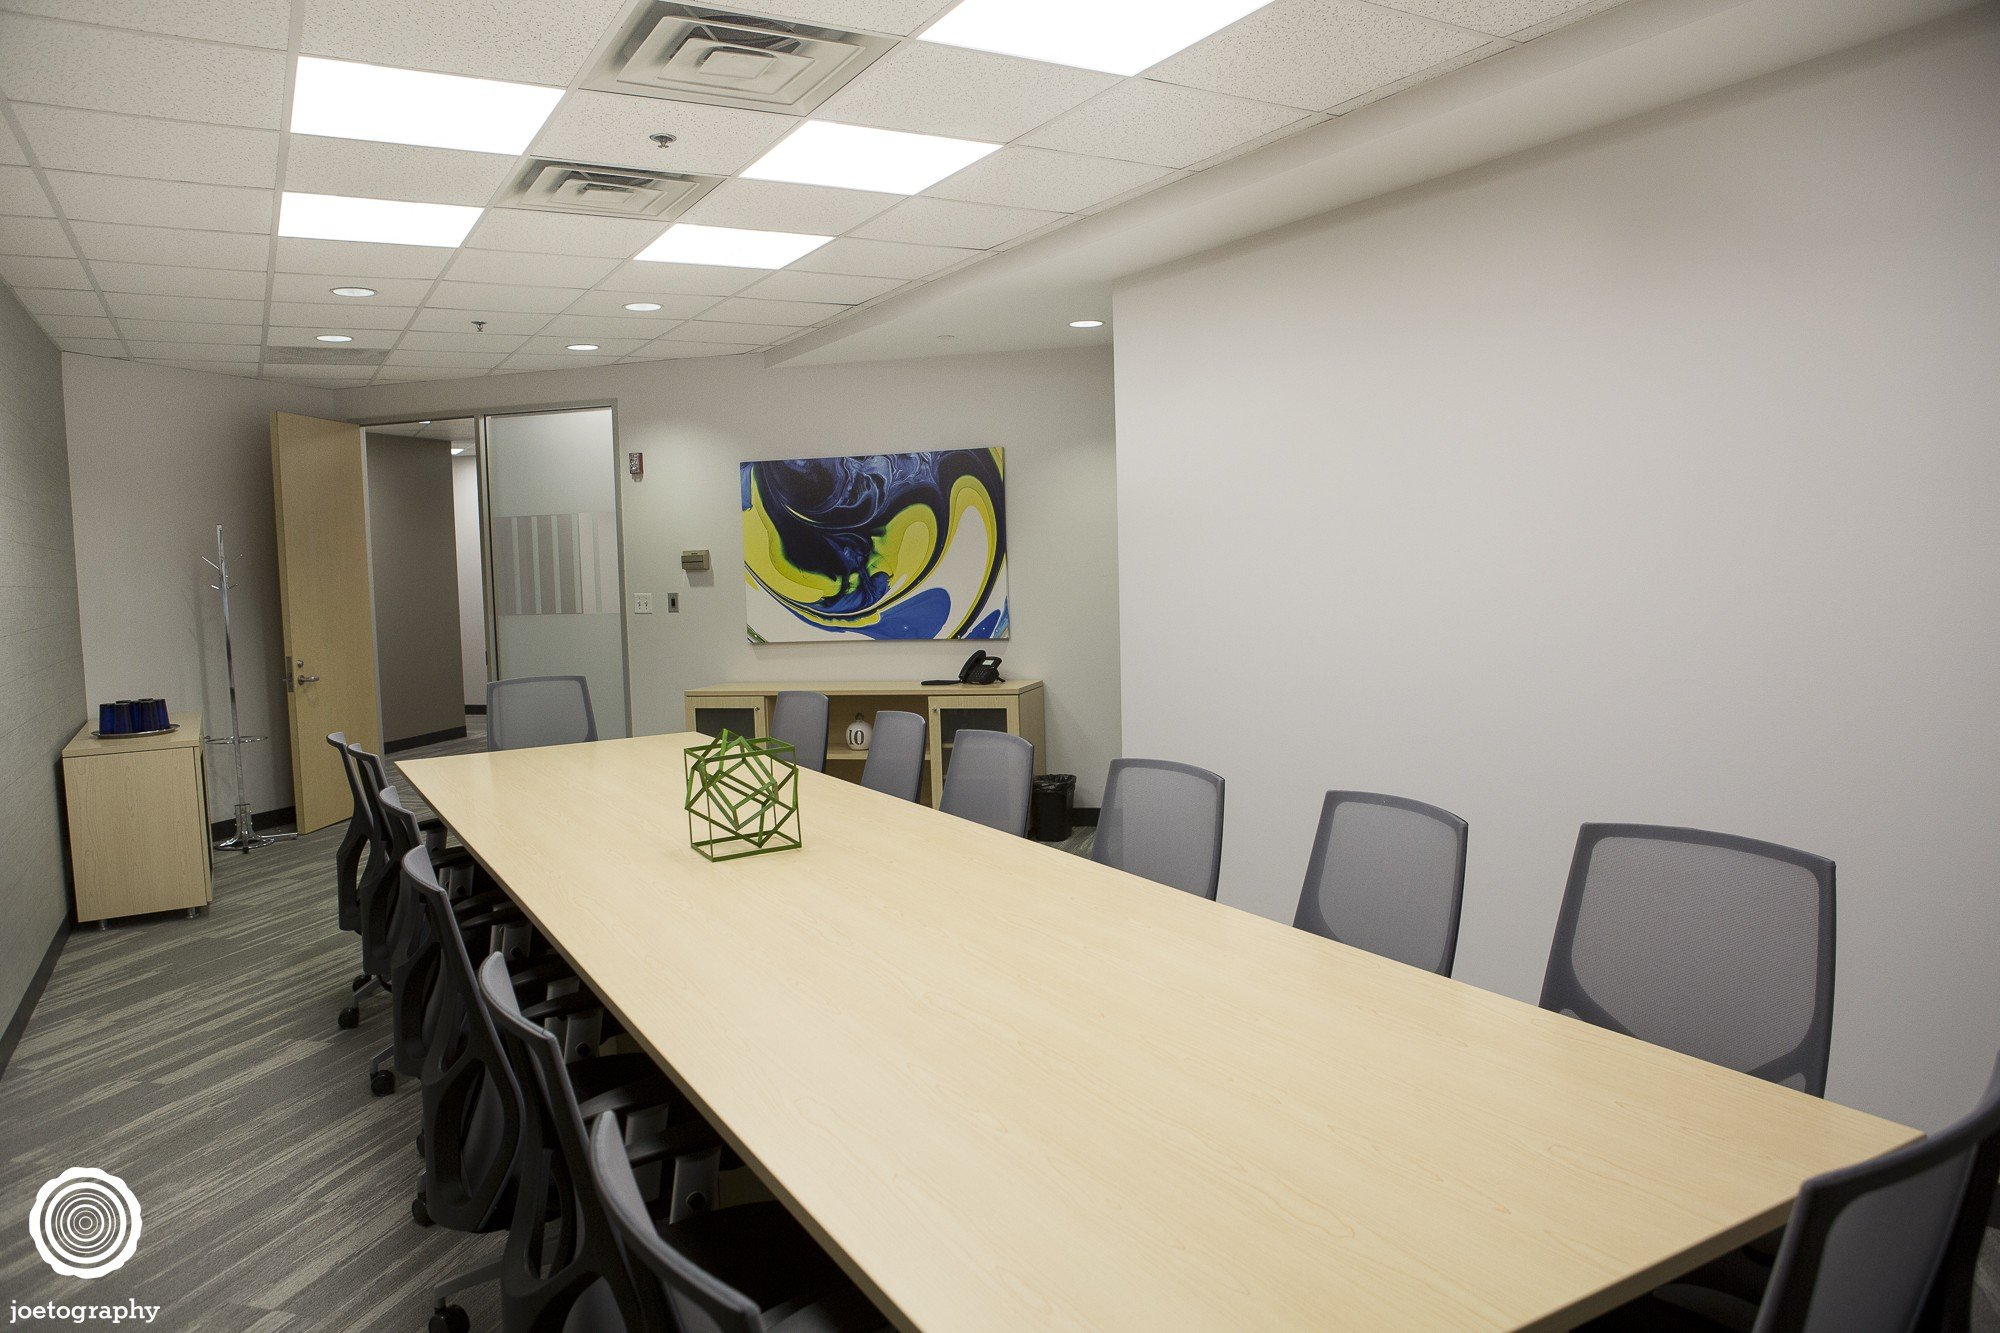 capital-construction-regus-offices-architecture-photography-indianapolis-4